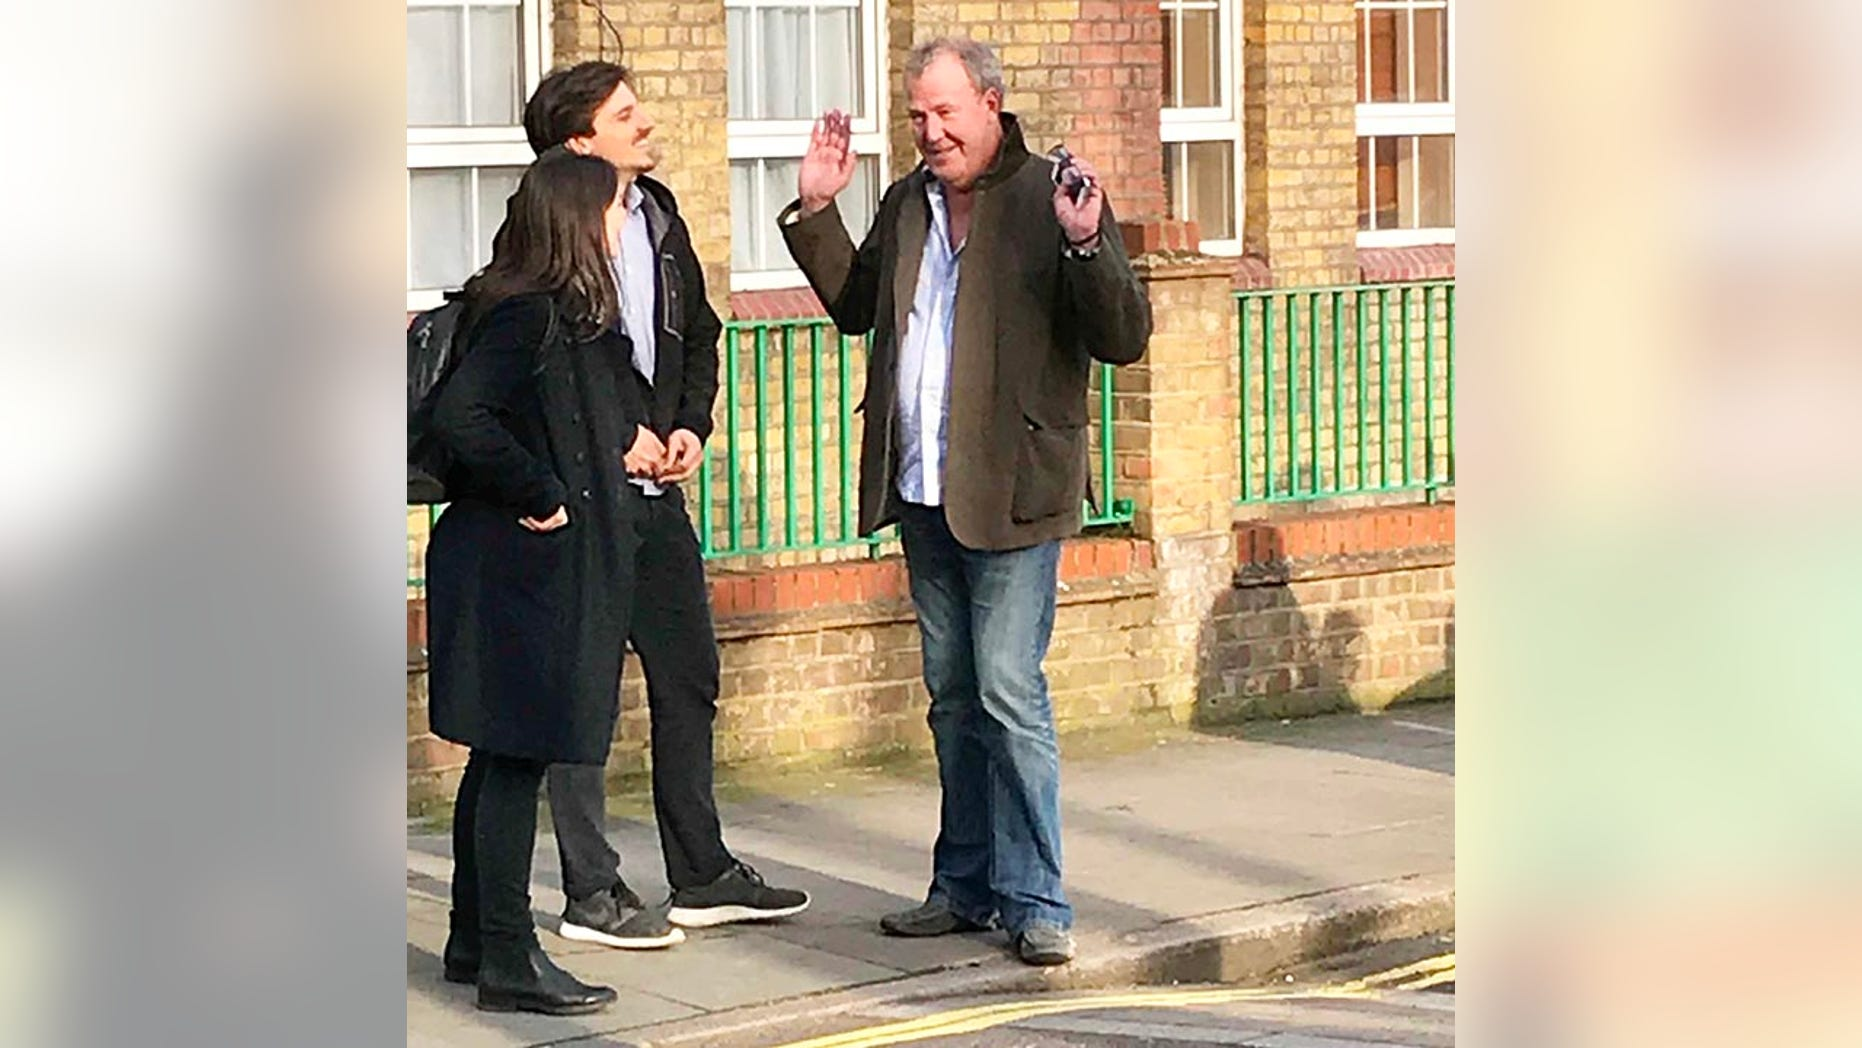 """**ONLINE EMBARGO UNTIL 6PM BST APRIL 8, 2018** Petrolhead Jeremy Clarkson ran into a bit of trouble when his SUV broke down on a London street - and had to call a recovery truck.  See SWNS story SWCLARKSON.  Jeremy Clarkson may once have driven to the North Pole on Top Gear but the motorhead was stranded on a London street when his SUV broke down.  The presenter, 57, hopped out of his vehicle in Rotherhithe, south east London, and was forced to wait until the RAC arrived at 5.45pm.  An onlooker said: """"He was standing in front of the car talking to two people on the street.  """"There were two RAC attendants checking his vehicle. The engine lid was open and they were sorting it out."""""""